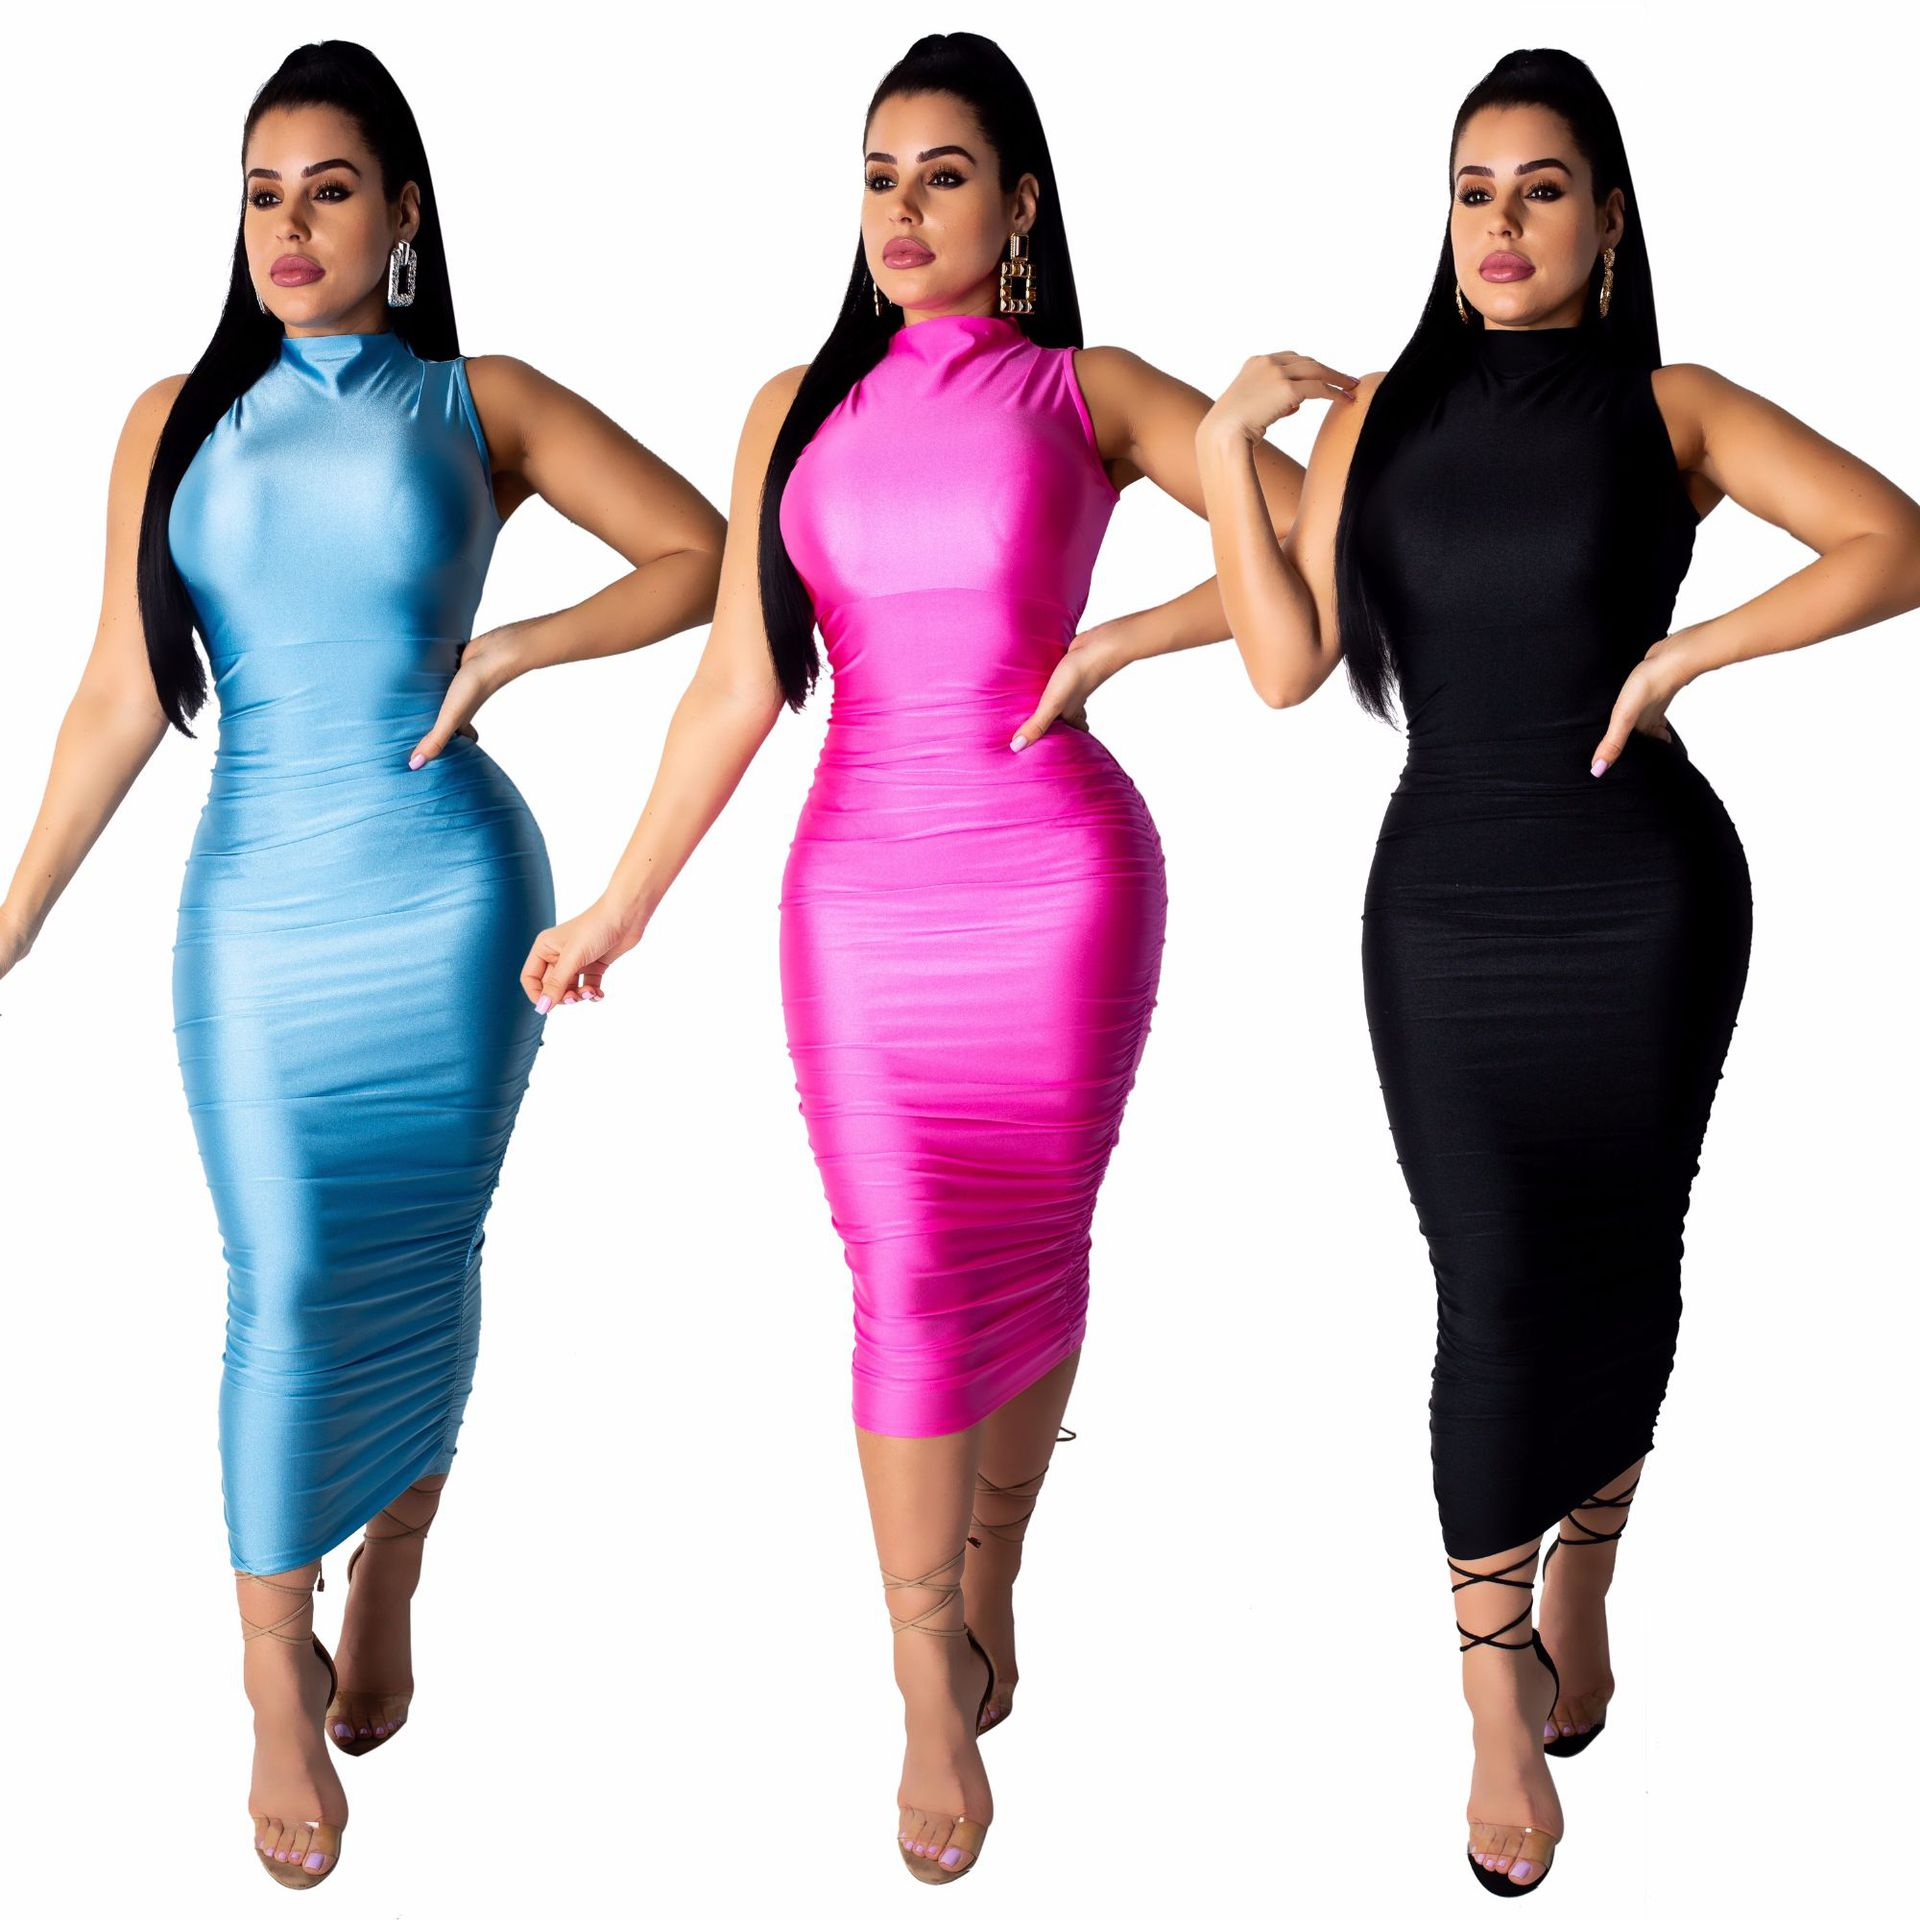 XM6067  Supply Of Goods  Hot Selling WOMEN'S Dress Sexy Nightclub Smooth Reflective Sleeveless Dress